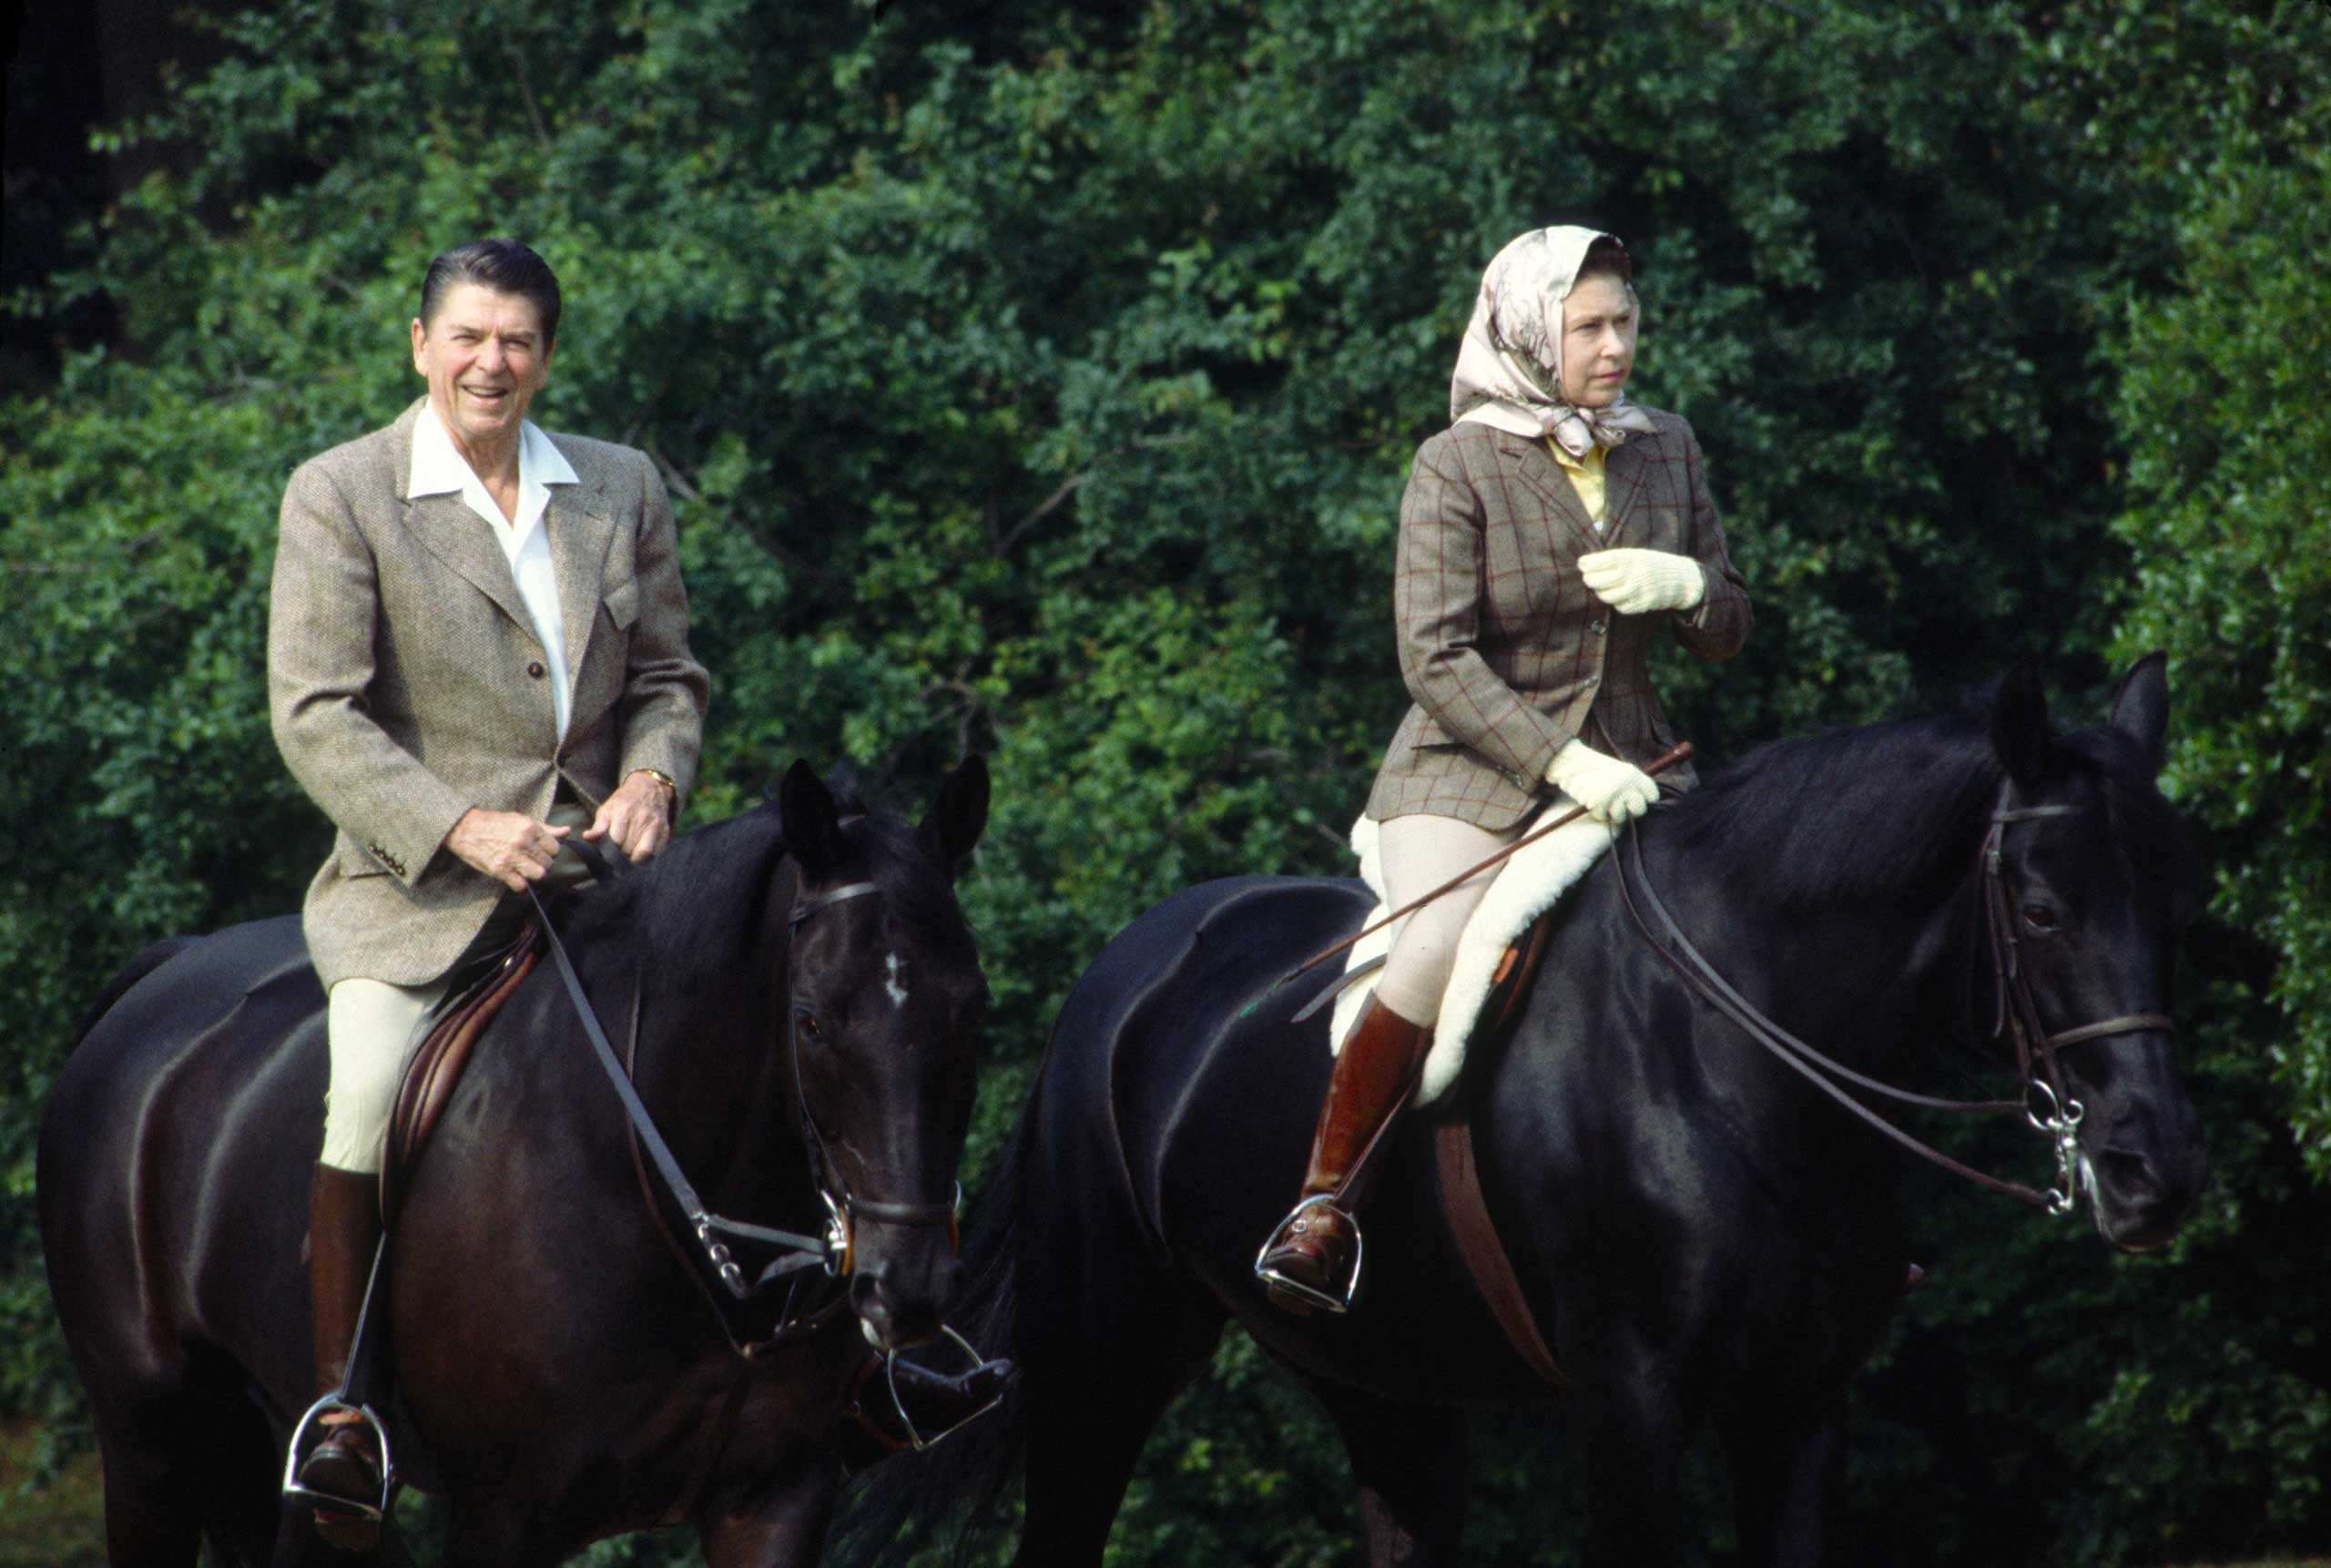 During a State Visit, Queen Elizabeth II rides her horse in Windsor Great Park with President Ronald Reagan in the United Kingdom in 1982.